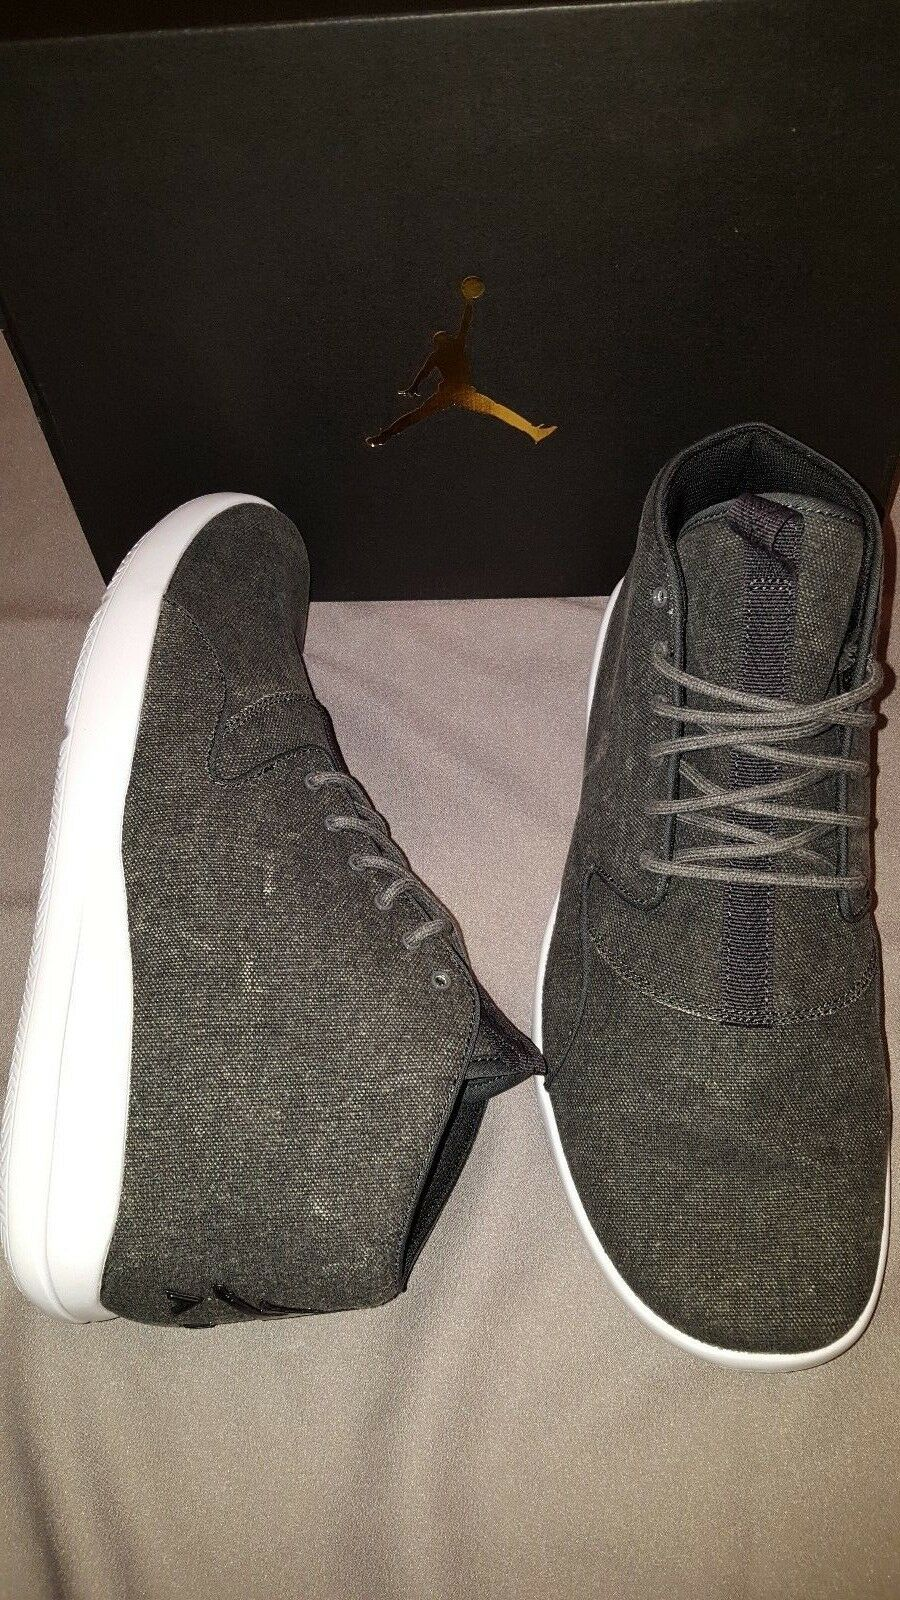 NIKE JORDAN ECLIPSE CHUKKA GREY WHITE SHOES MENS SIZE US 9 NEW IN BOX 881453 006